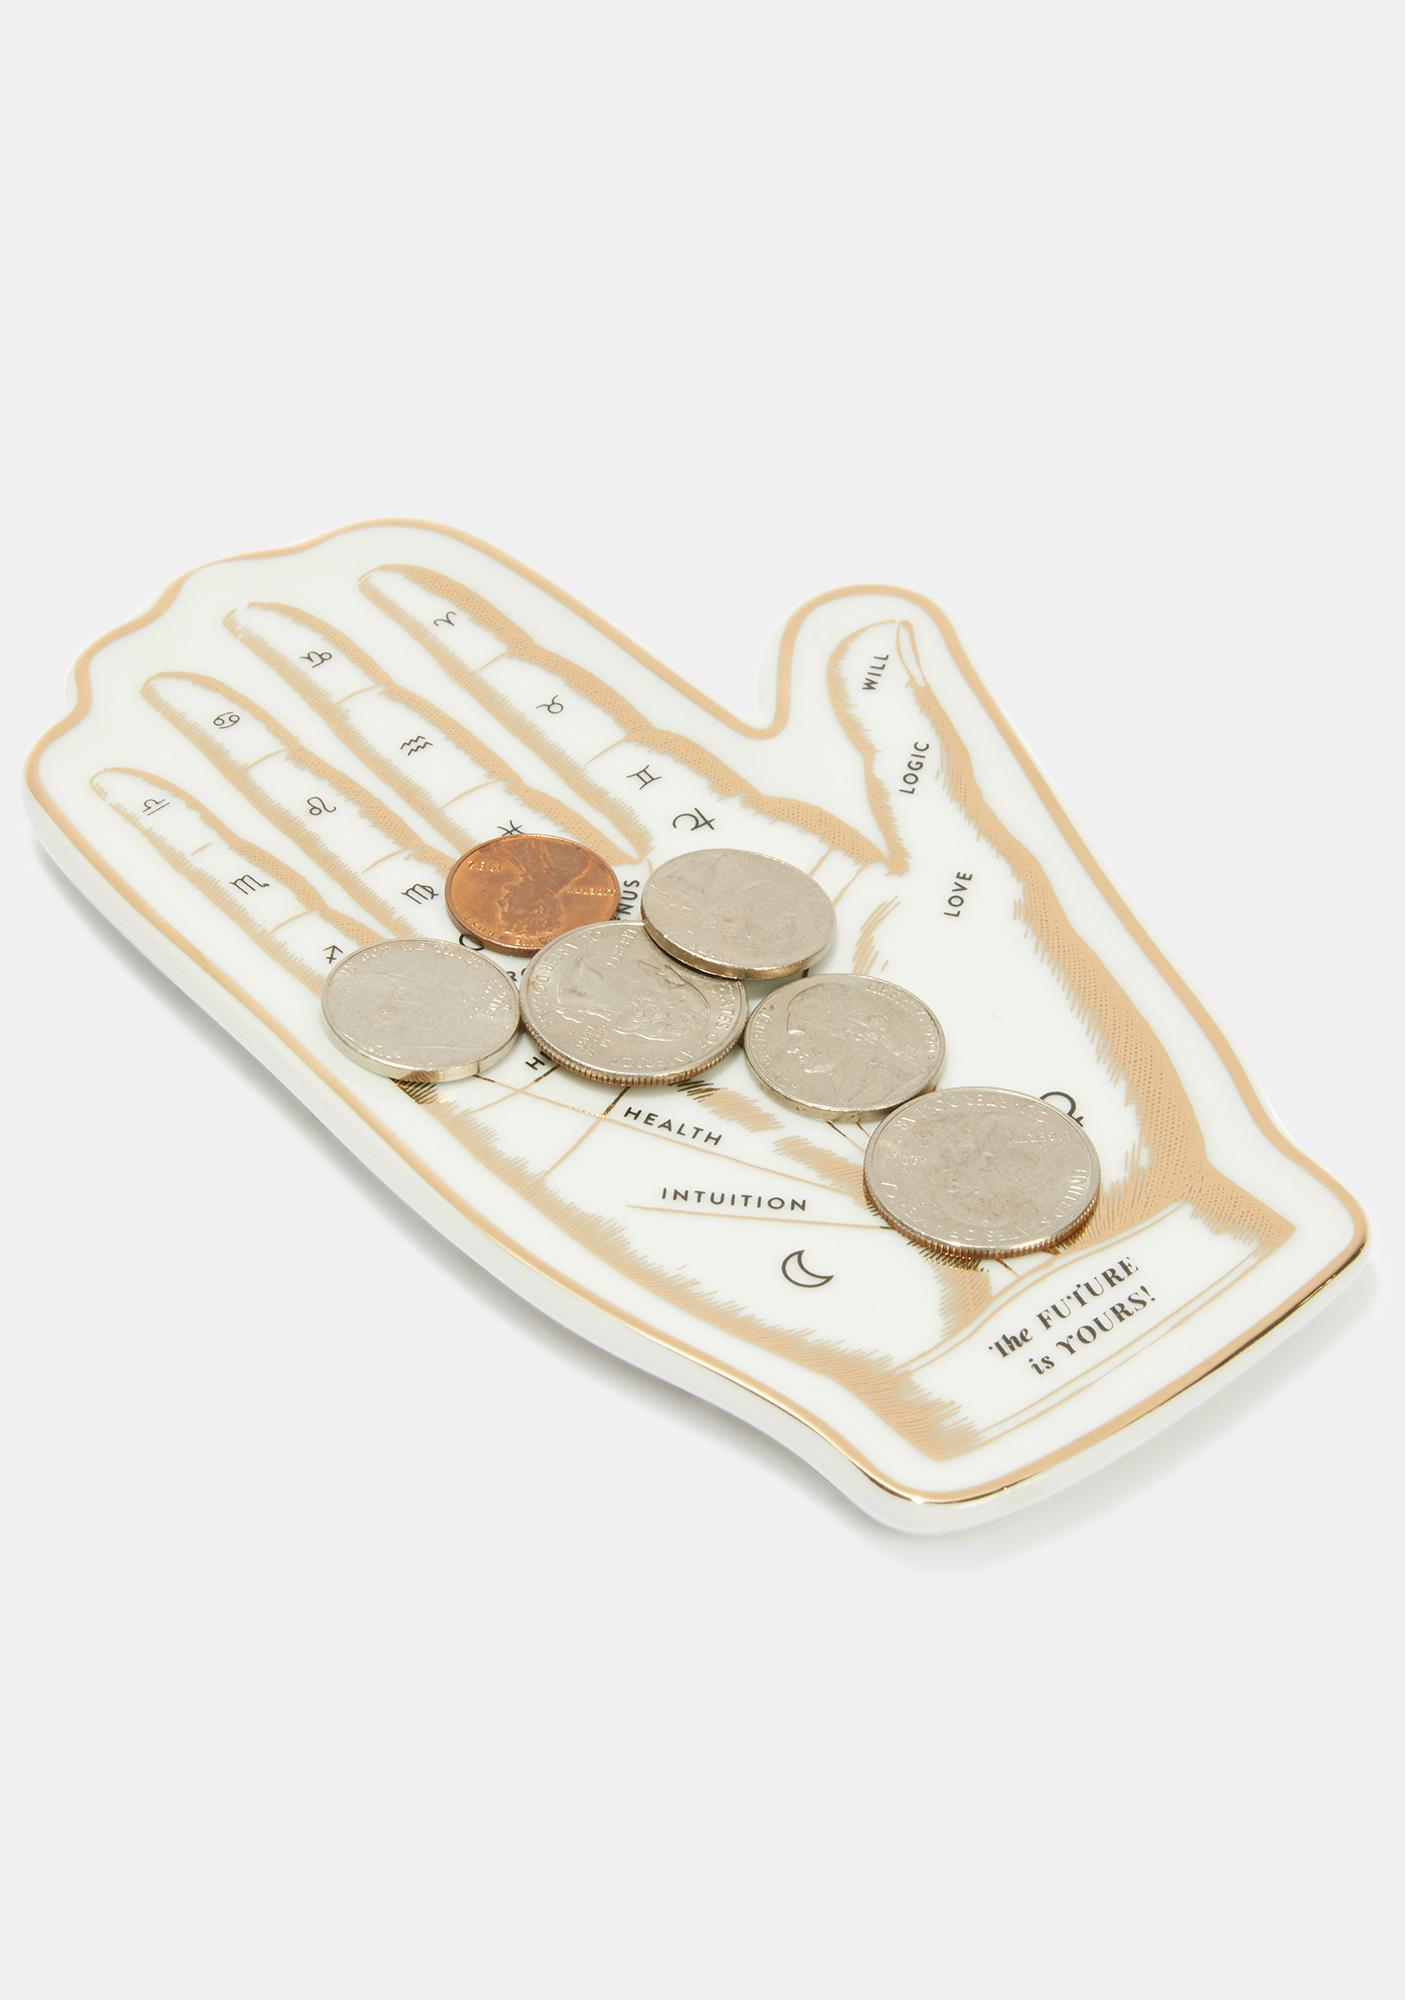 Be My Life Line Hand Tray